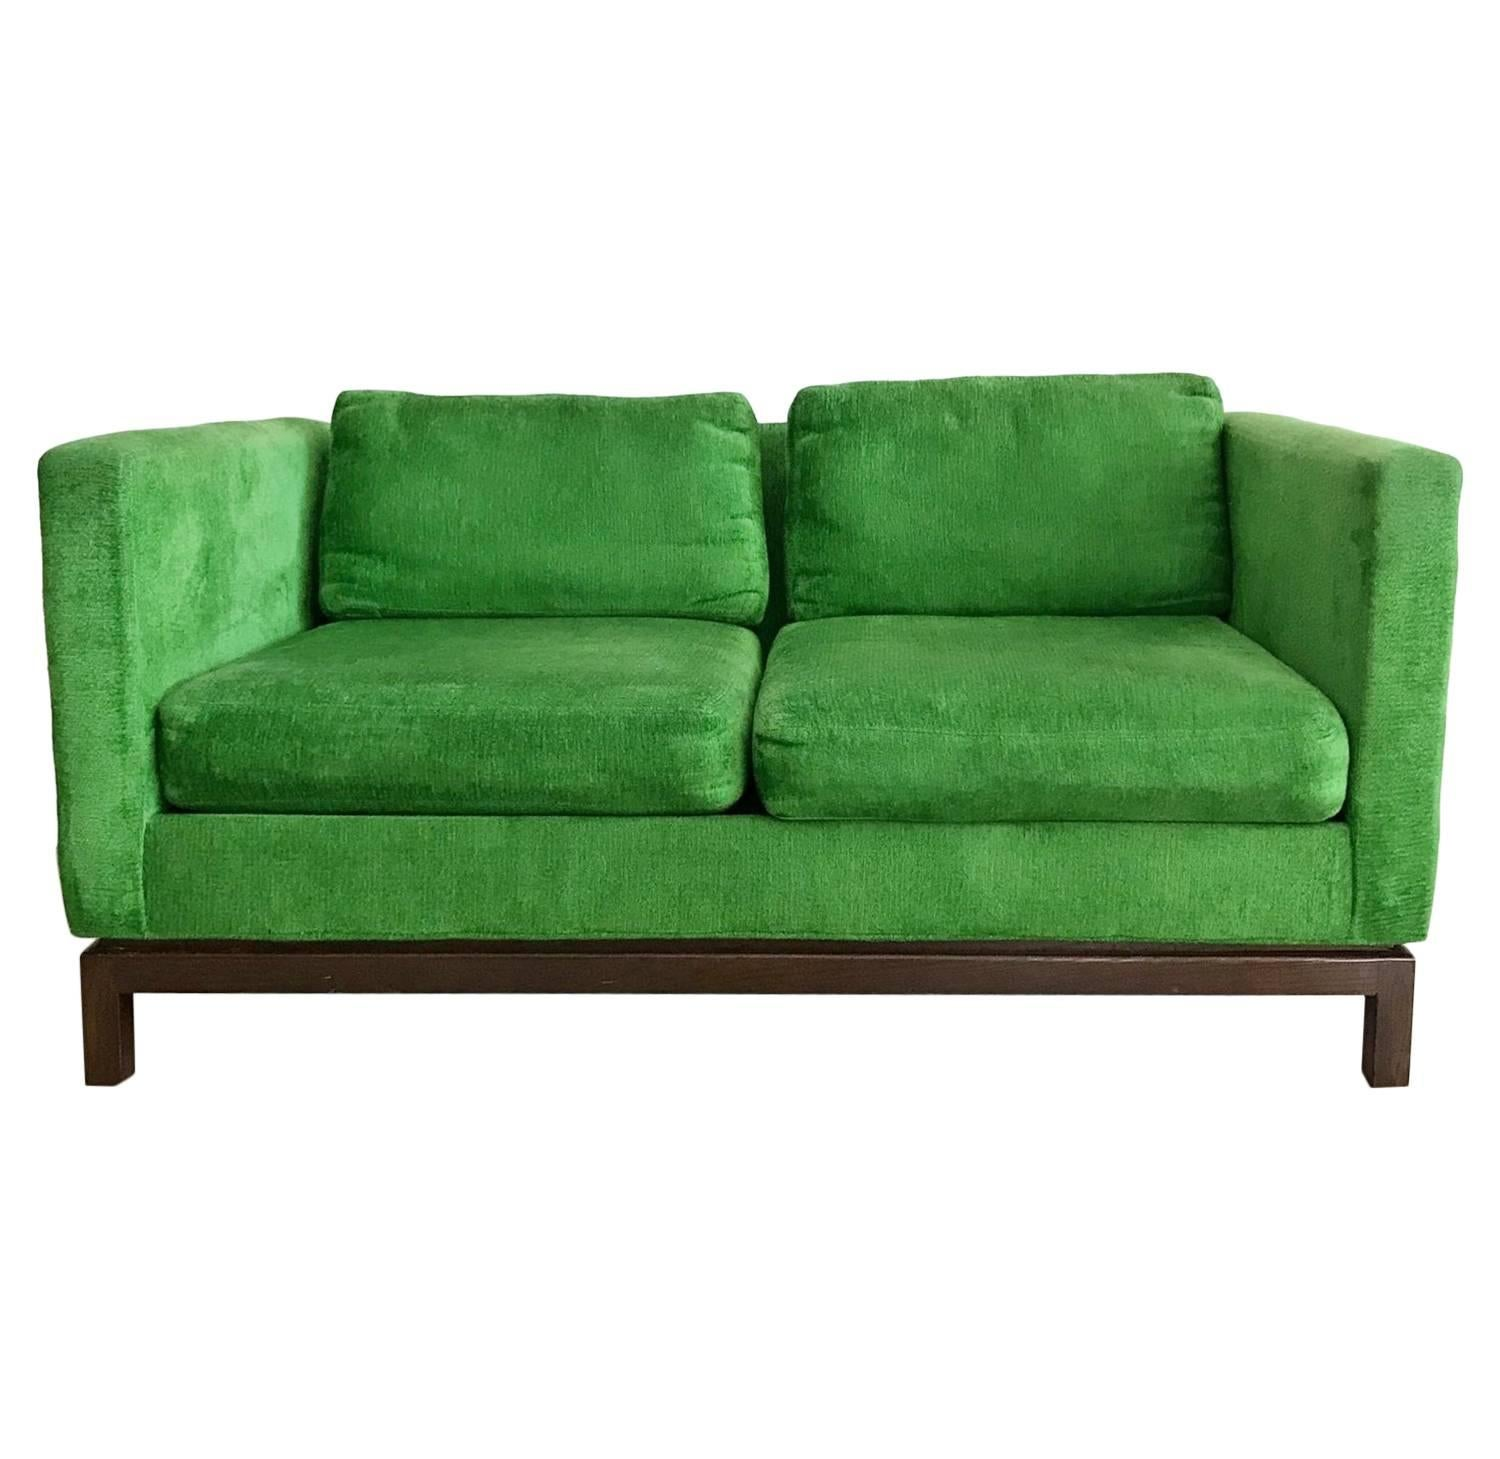 schlafsofa grn great scott seater left hand facing chaise end sofa grass cotton velvet with. Black Bedroom Furniture Sets. Home Design Ideas